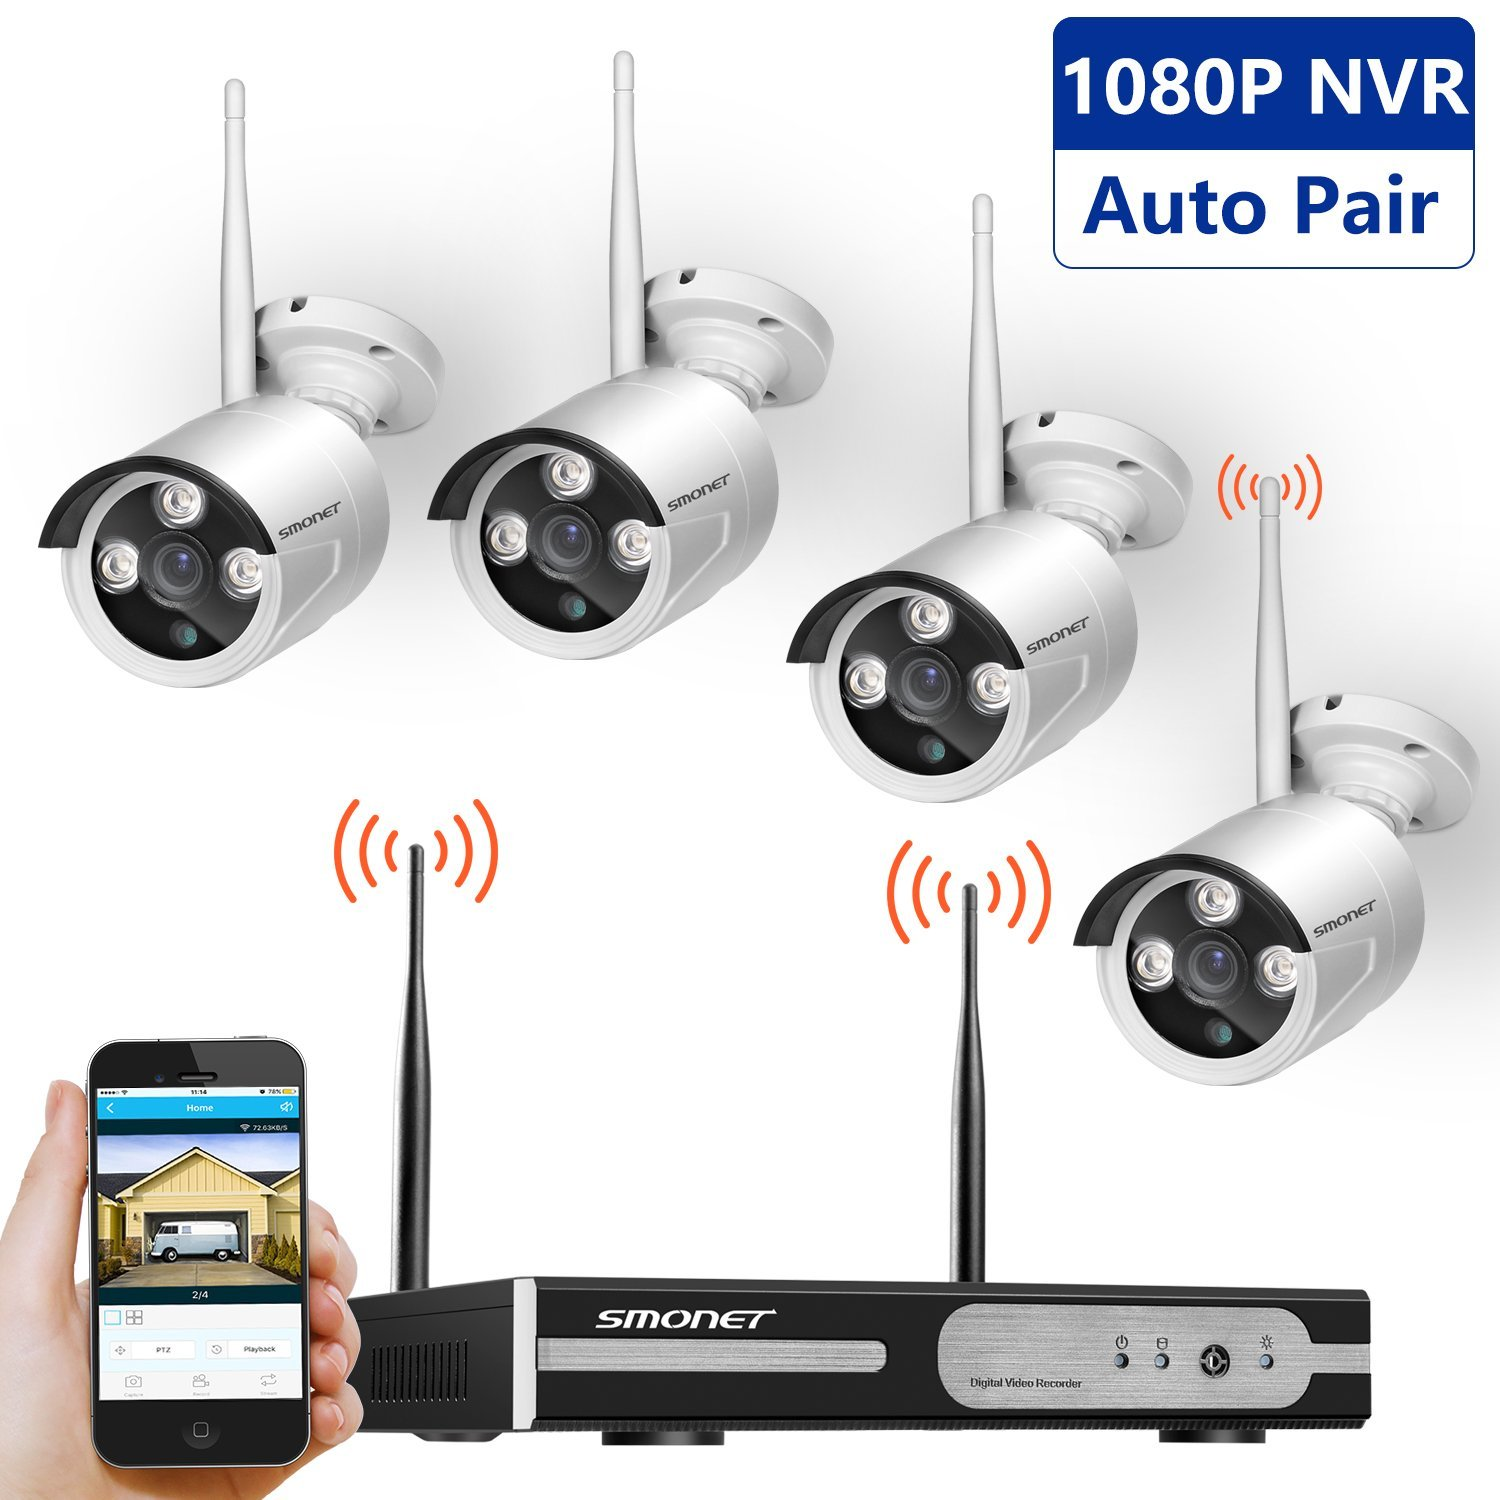 Wireless Security Camera System, SMONET 4CH 1080P Video Security System, 4pcs 720P Bullet IP Cameras, Support Motion Detection Alarm & Remote View by IOS or Android App, No Hard Drive